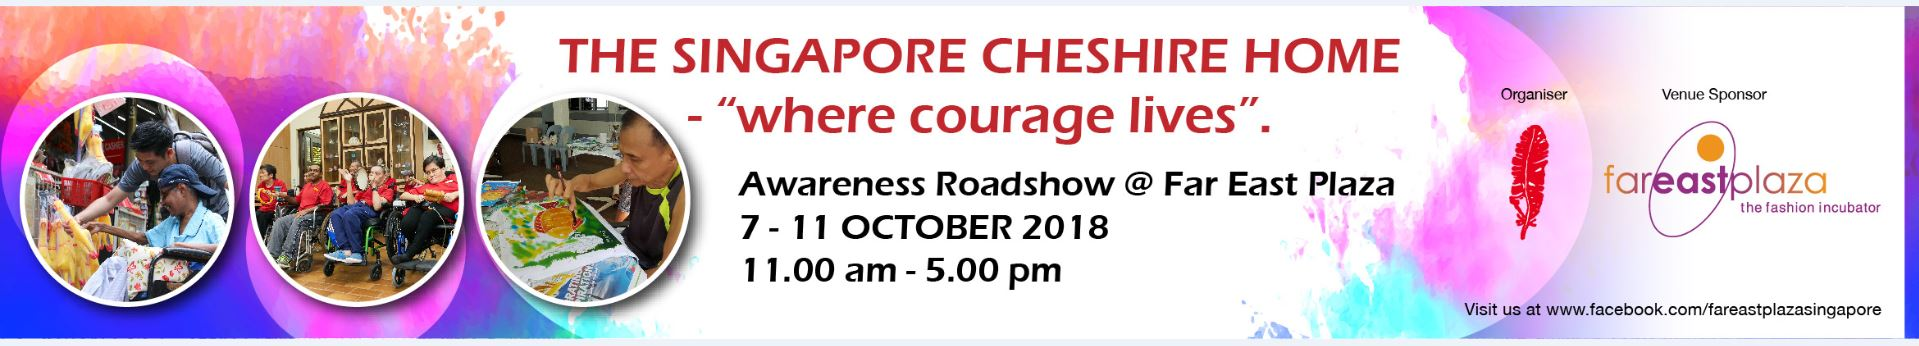 Far East Plaza Roadshow - 7th to 11th October 2018